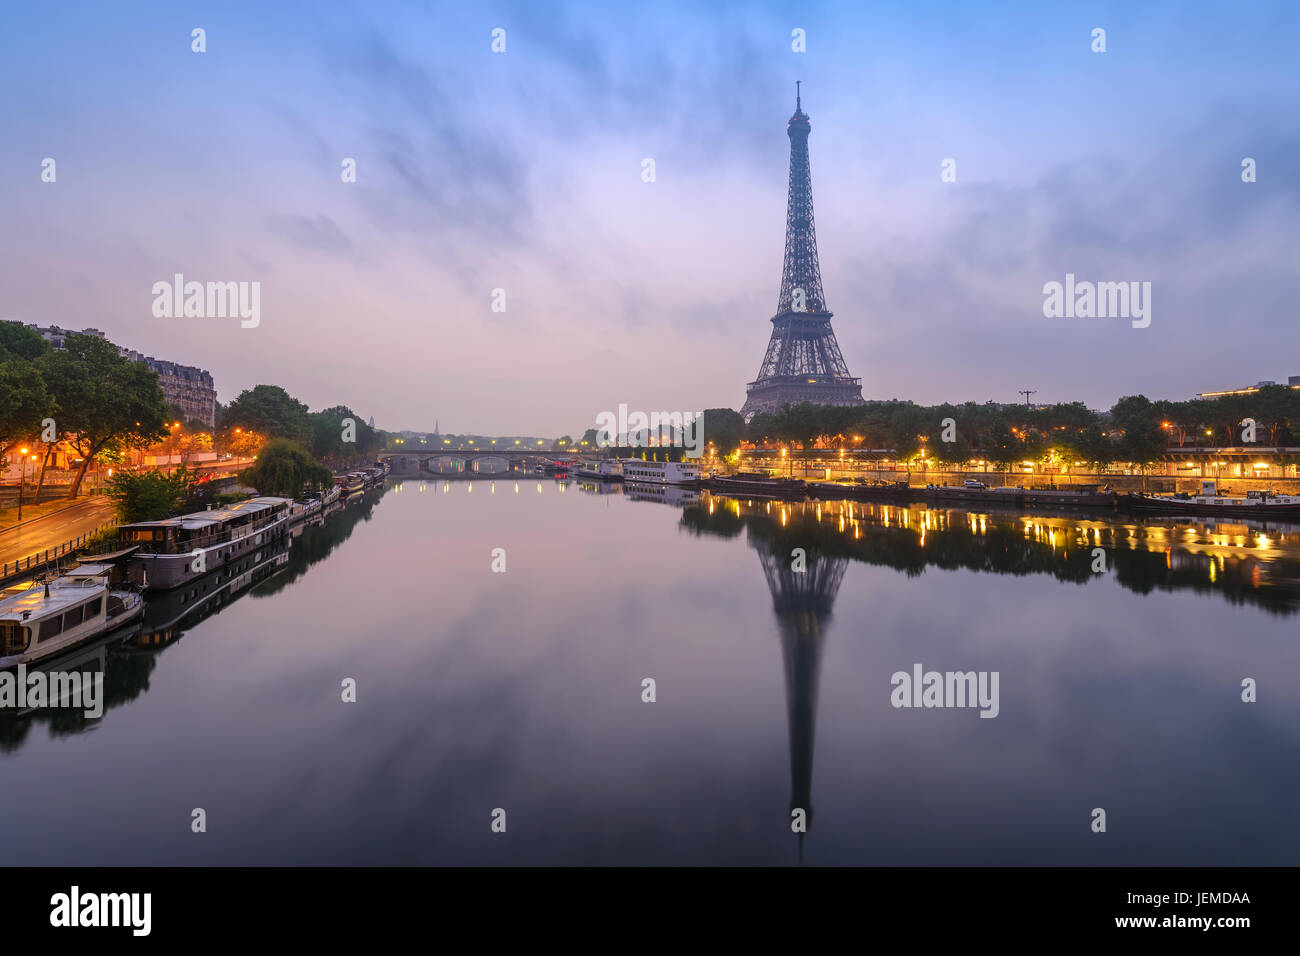 Paris city skyline with Eiffel Tower and Seine River when sunrise, Paris, France - Stock Image